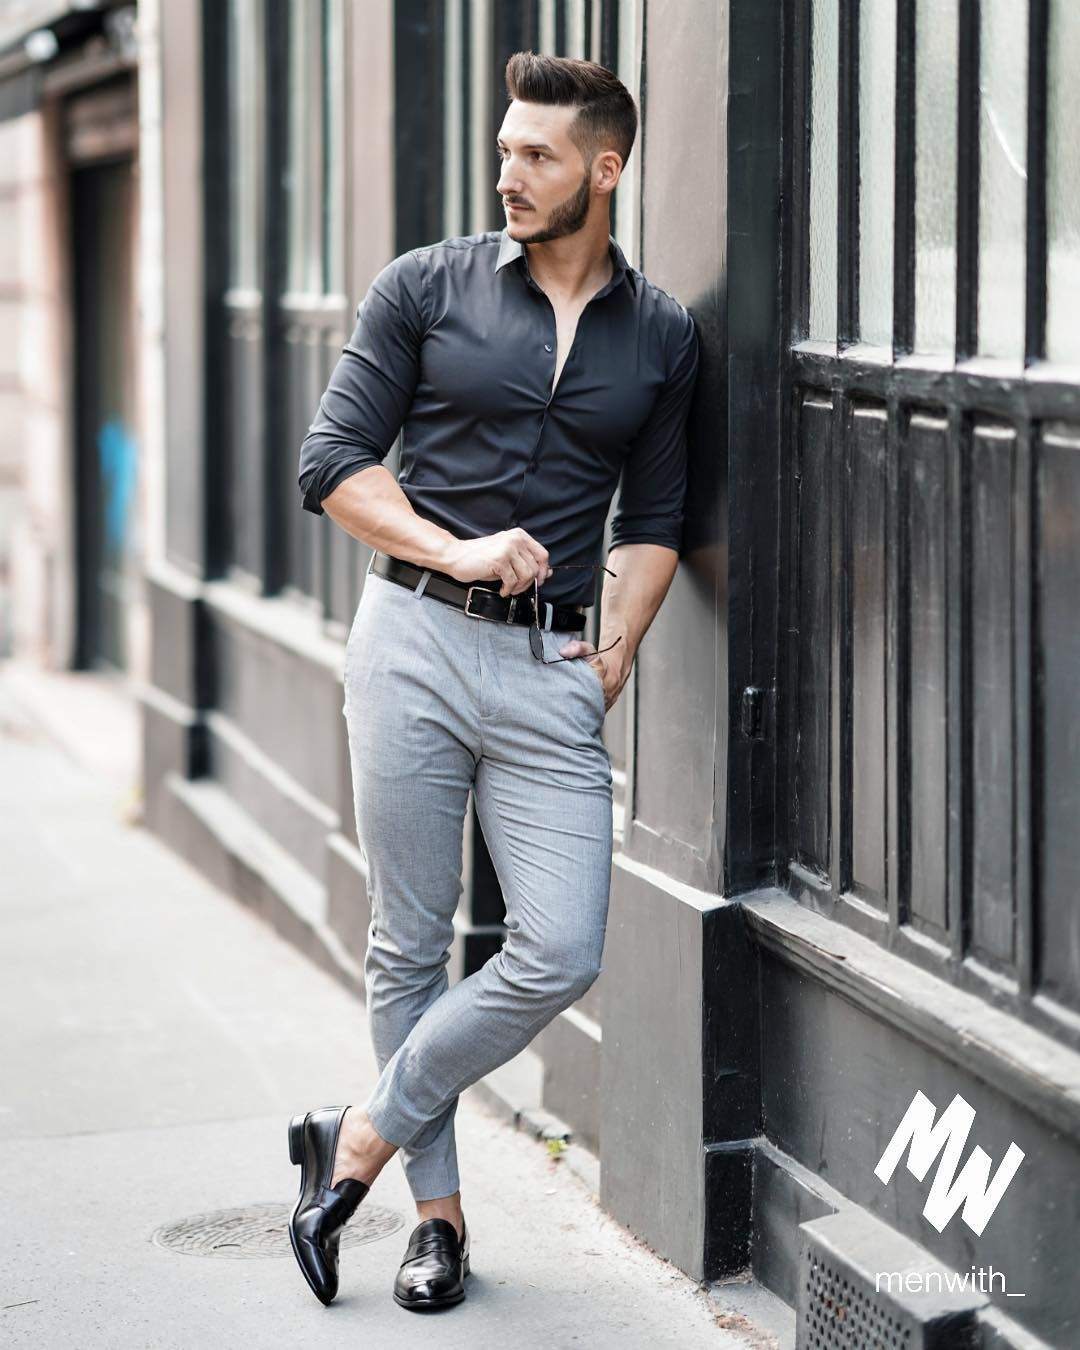 Clement You On Instagram Black Grey Classy Style Have A Nice Evening My Friends Formal Men Outfit Men Fashion Casual Shirts Men Fashion Casual Outfits [ 1350 x 1080 Pixel ]